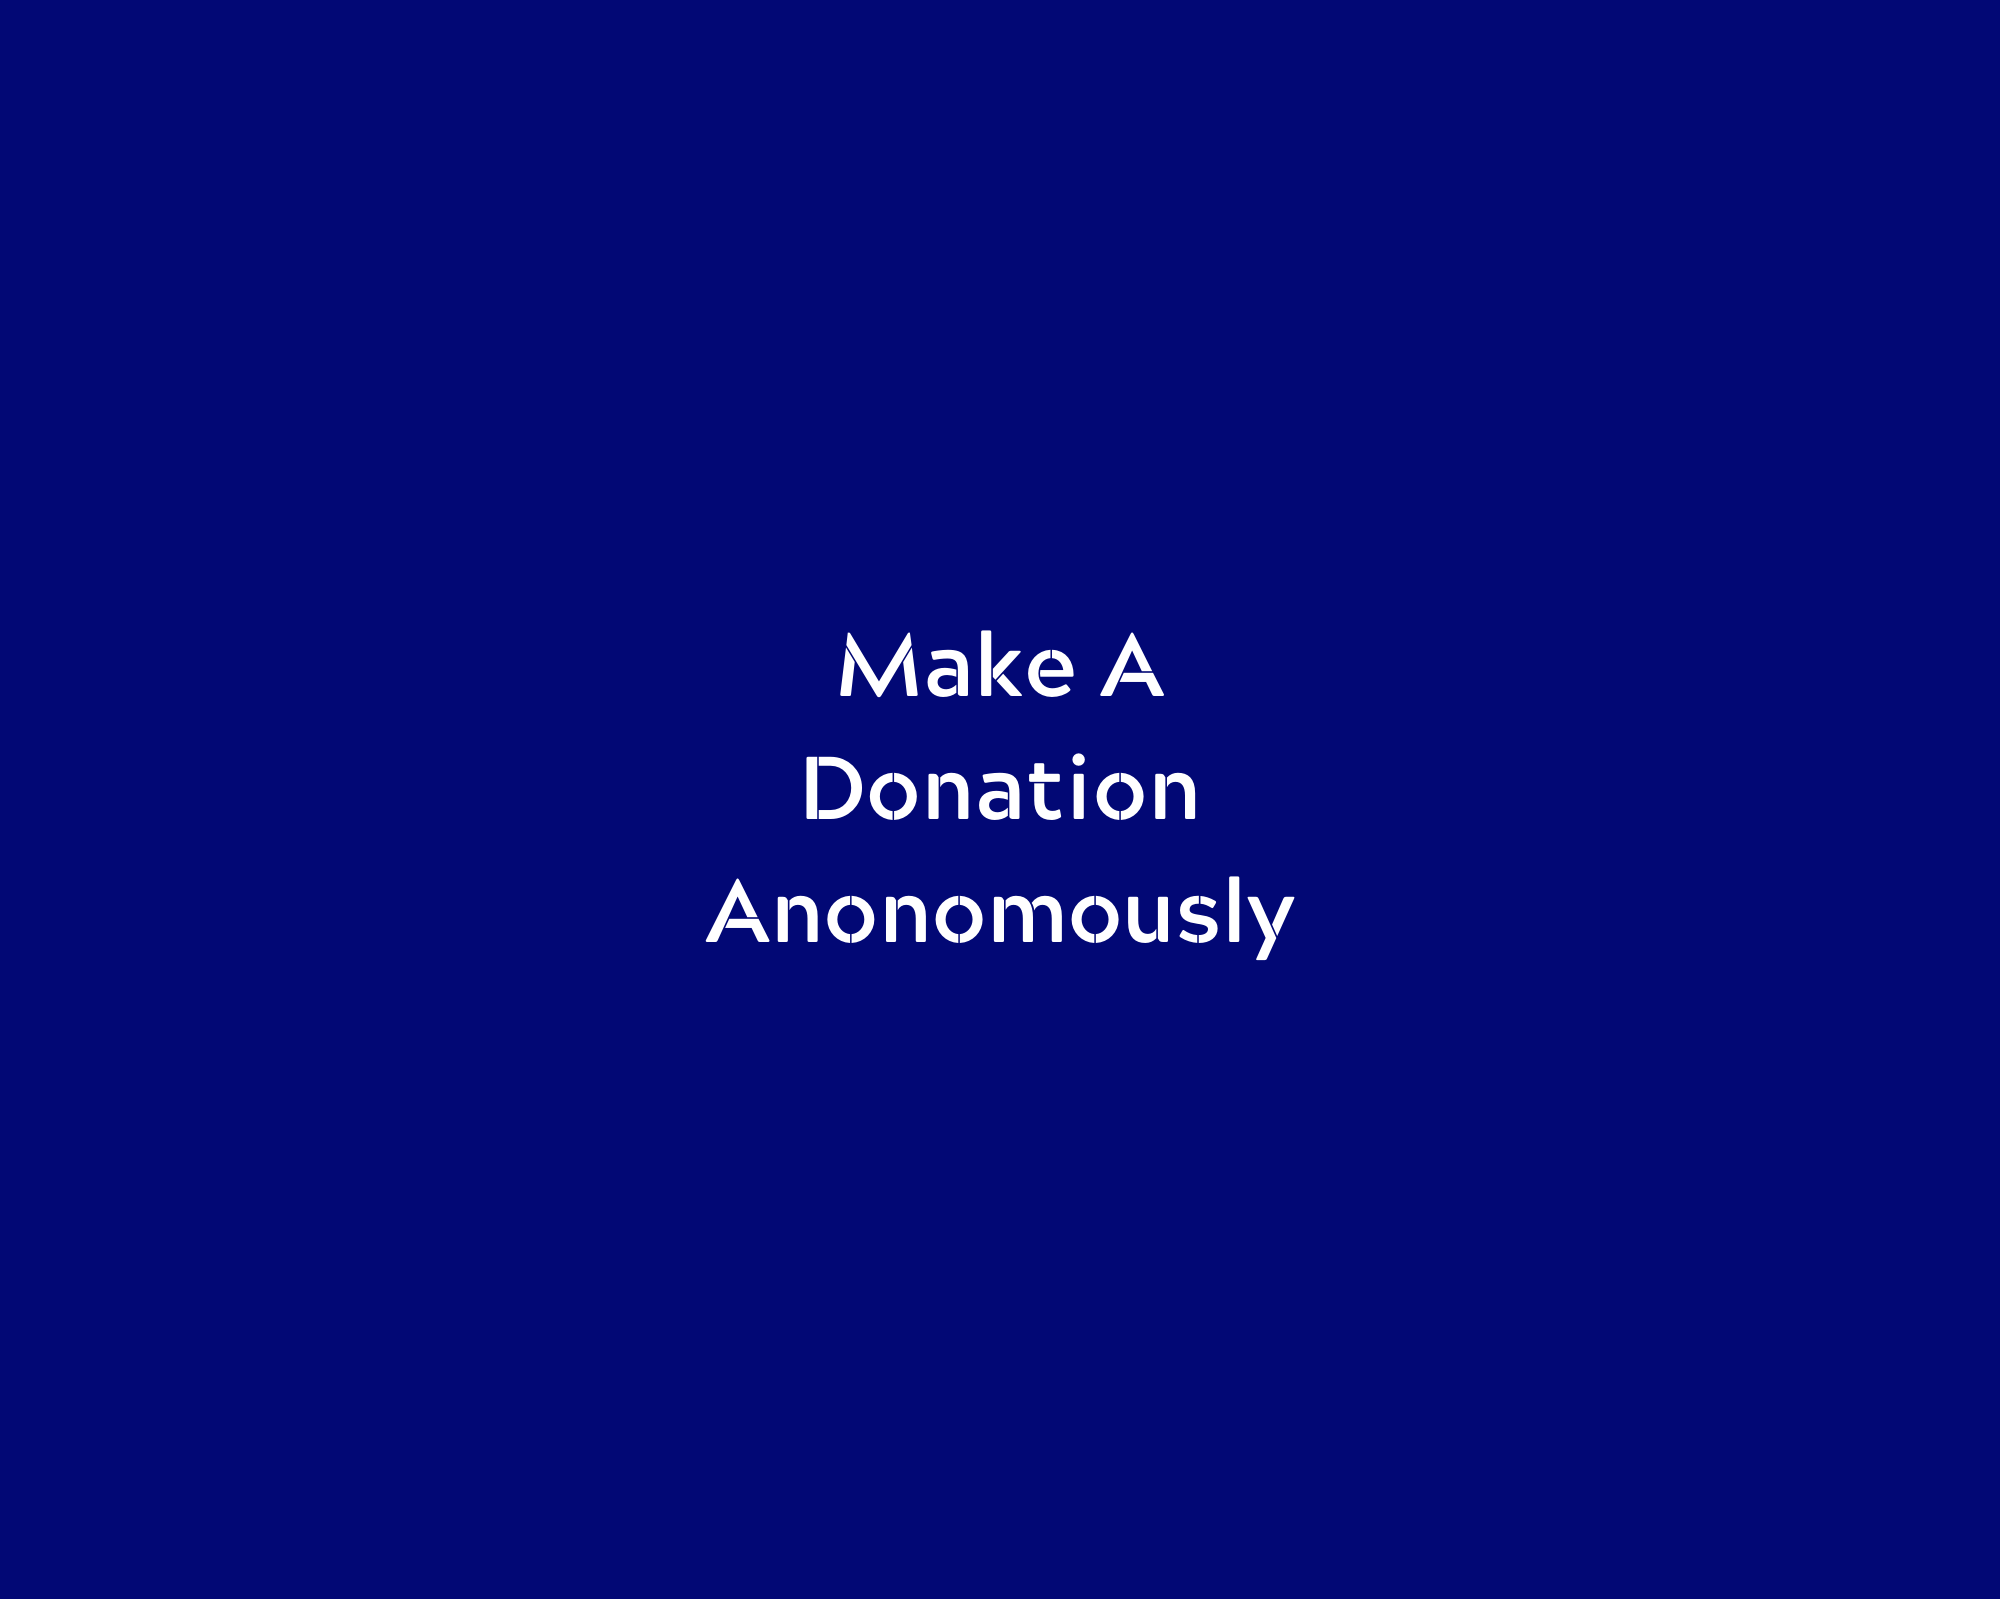 donate anonymously